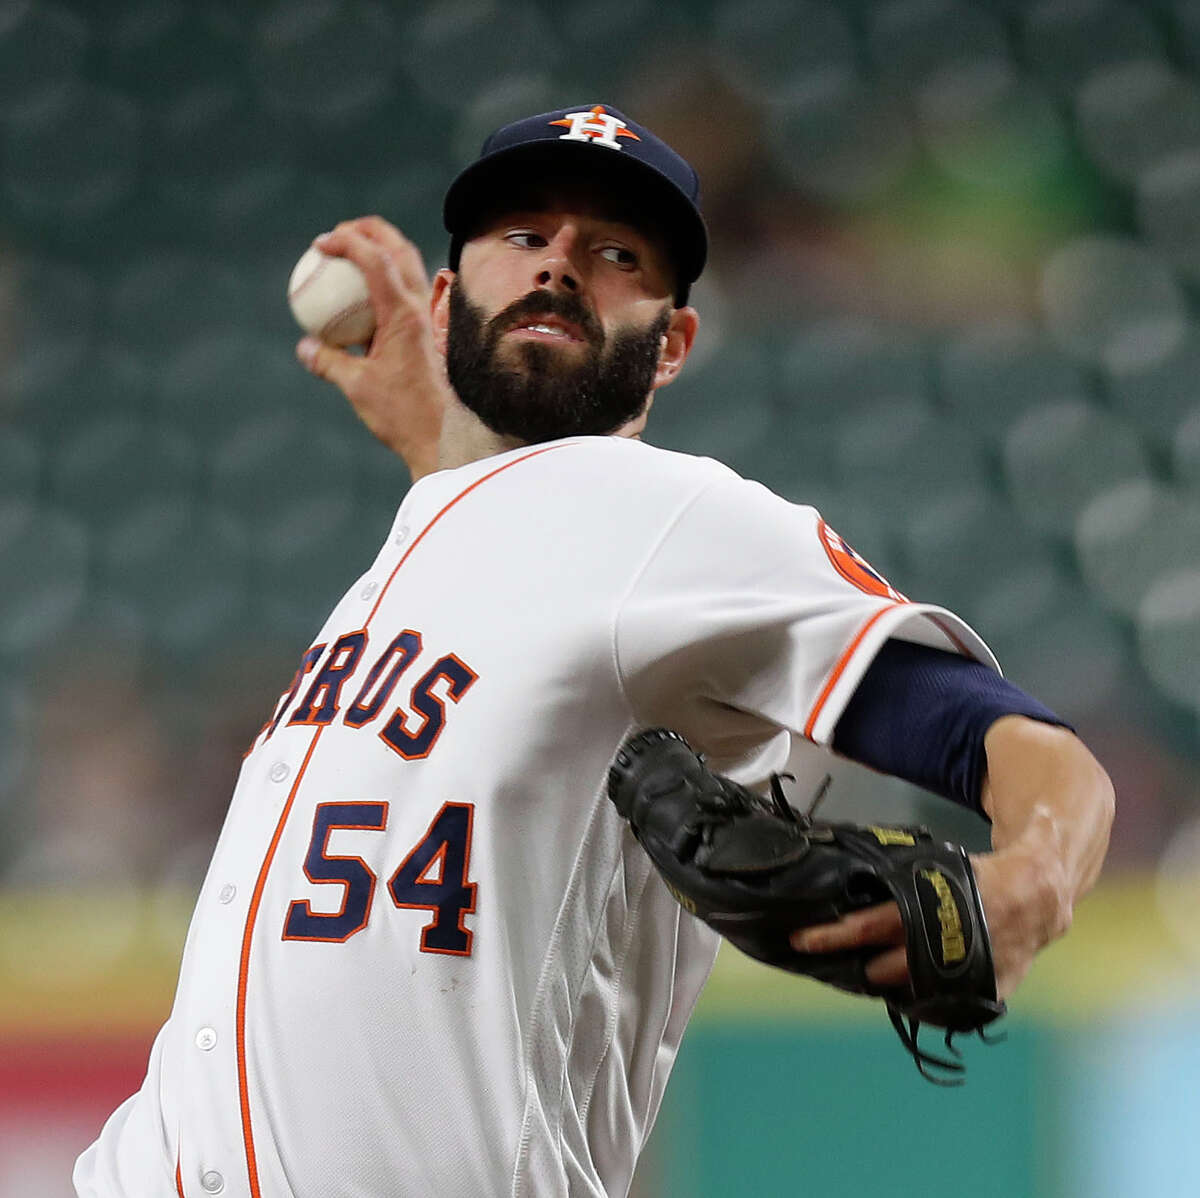 Houston Astros starting pitcher Mike Fiers (54) pitches during the first inning of an MLB game at Minute Maid Park, Thursday, Sept. 22, 2016 in Houston.